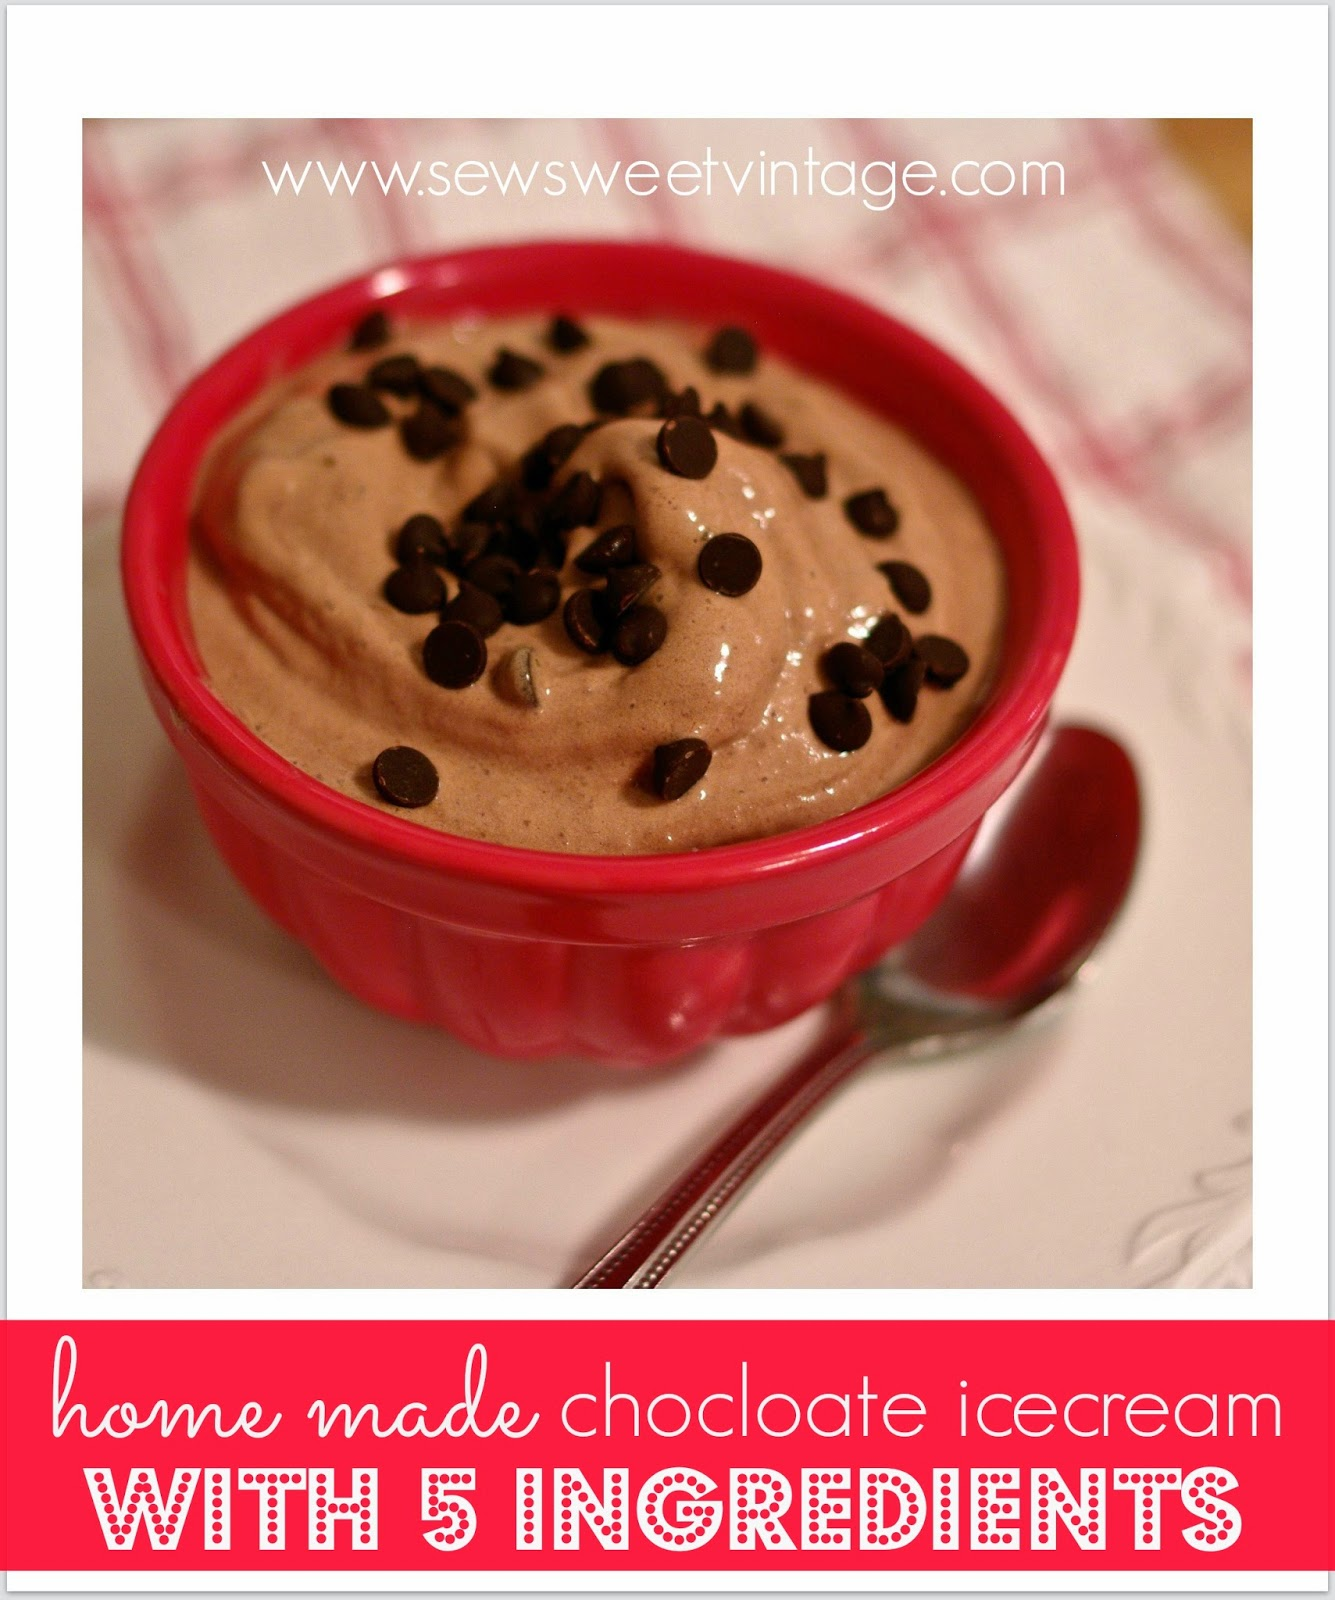 Sew sweet vintage home made gluten free chocolate ice cream for How to make delicious ice cream at home